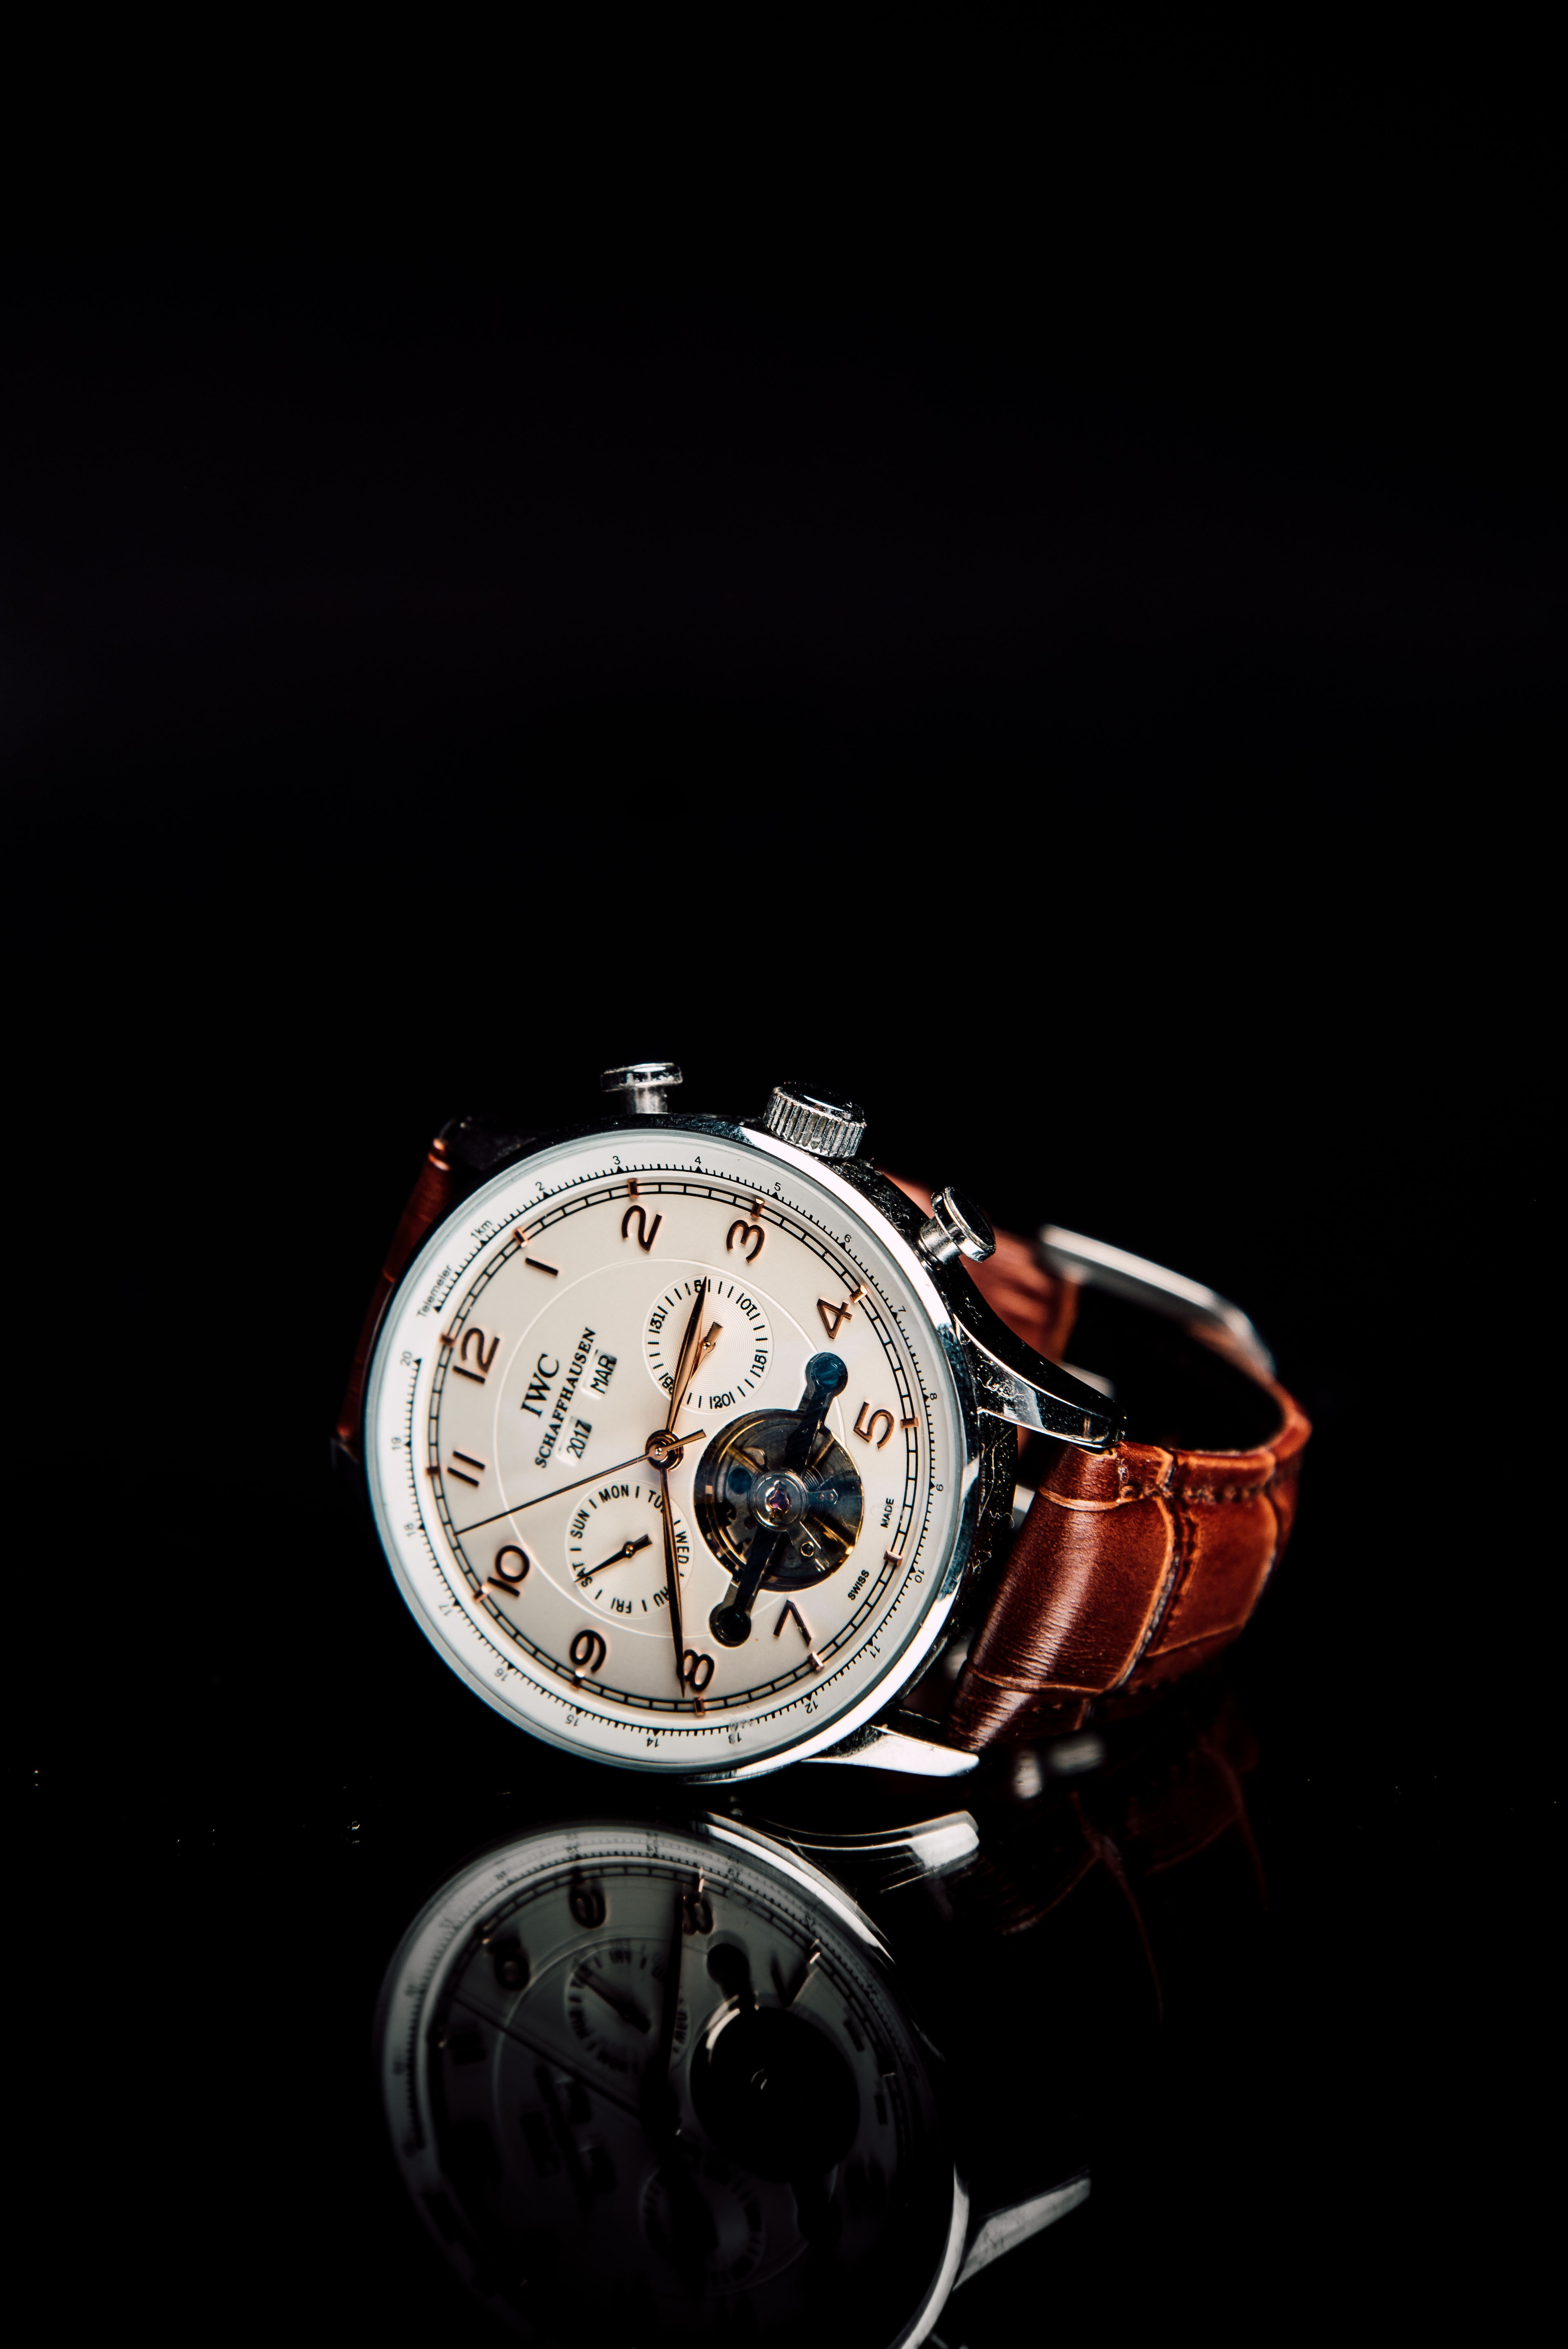 79596 download wallpaper Technologies, Technology, Wrist Watch, Wristwatch, Style, Male, Clock screensavers and pictures for free